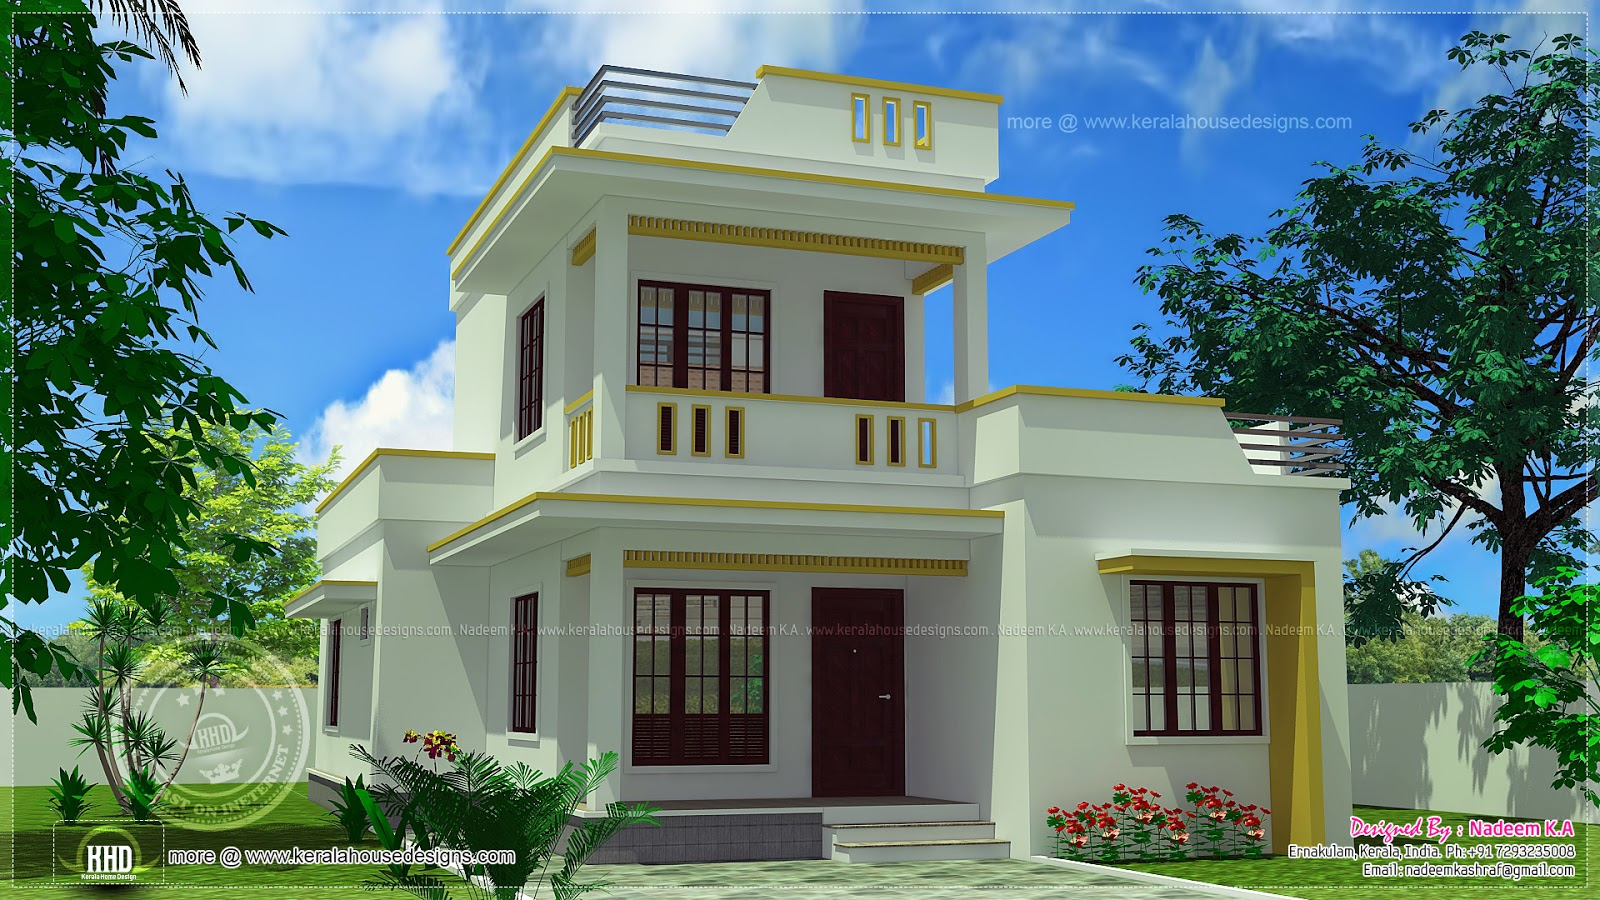 August 2013 kerala home design and floor plans Home building design